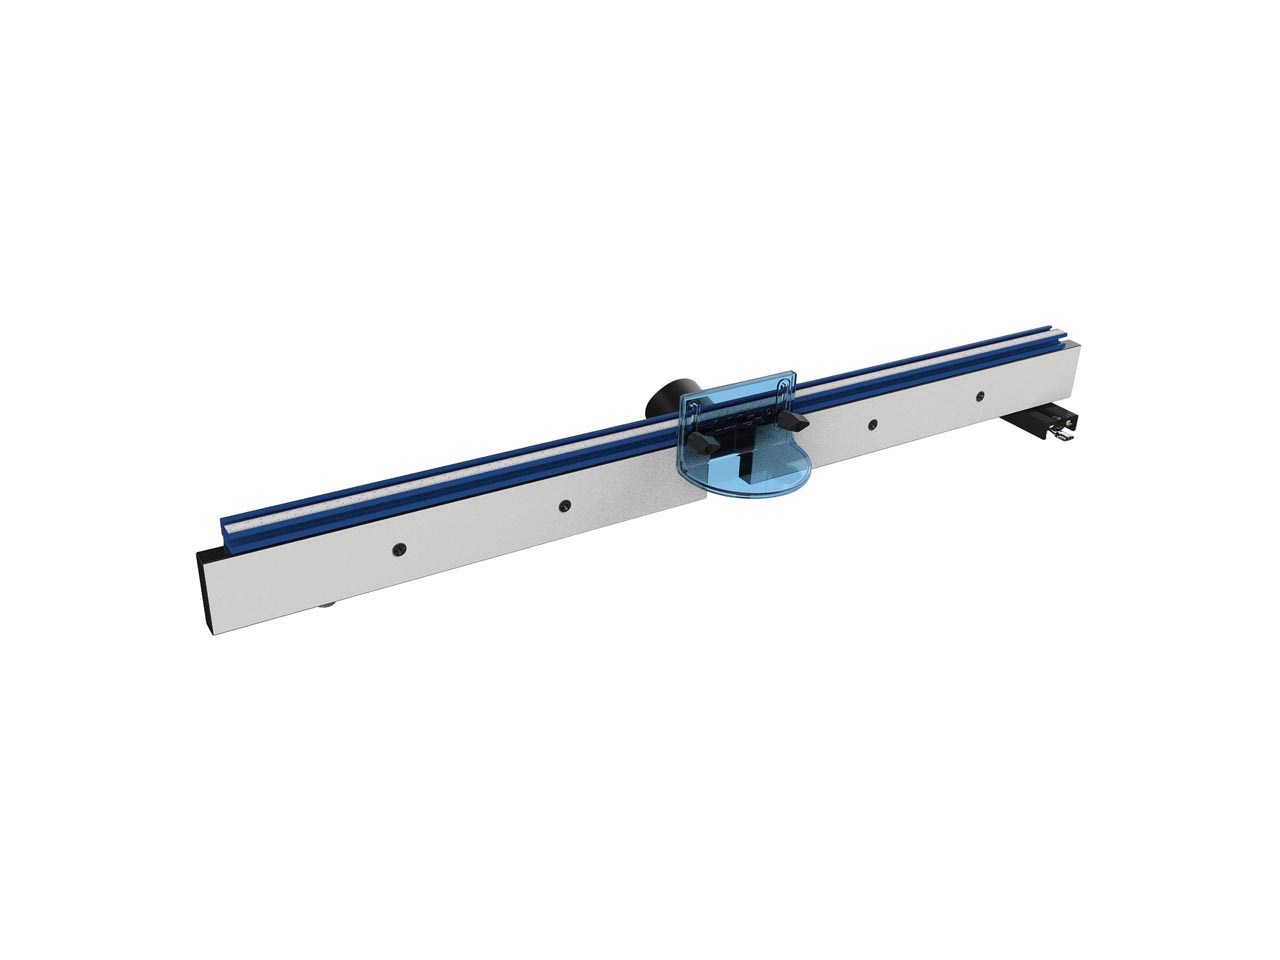 Kreg psr1015 precision router table fence prs1015 keyboard keysfo Image collections